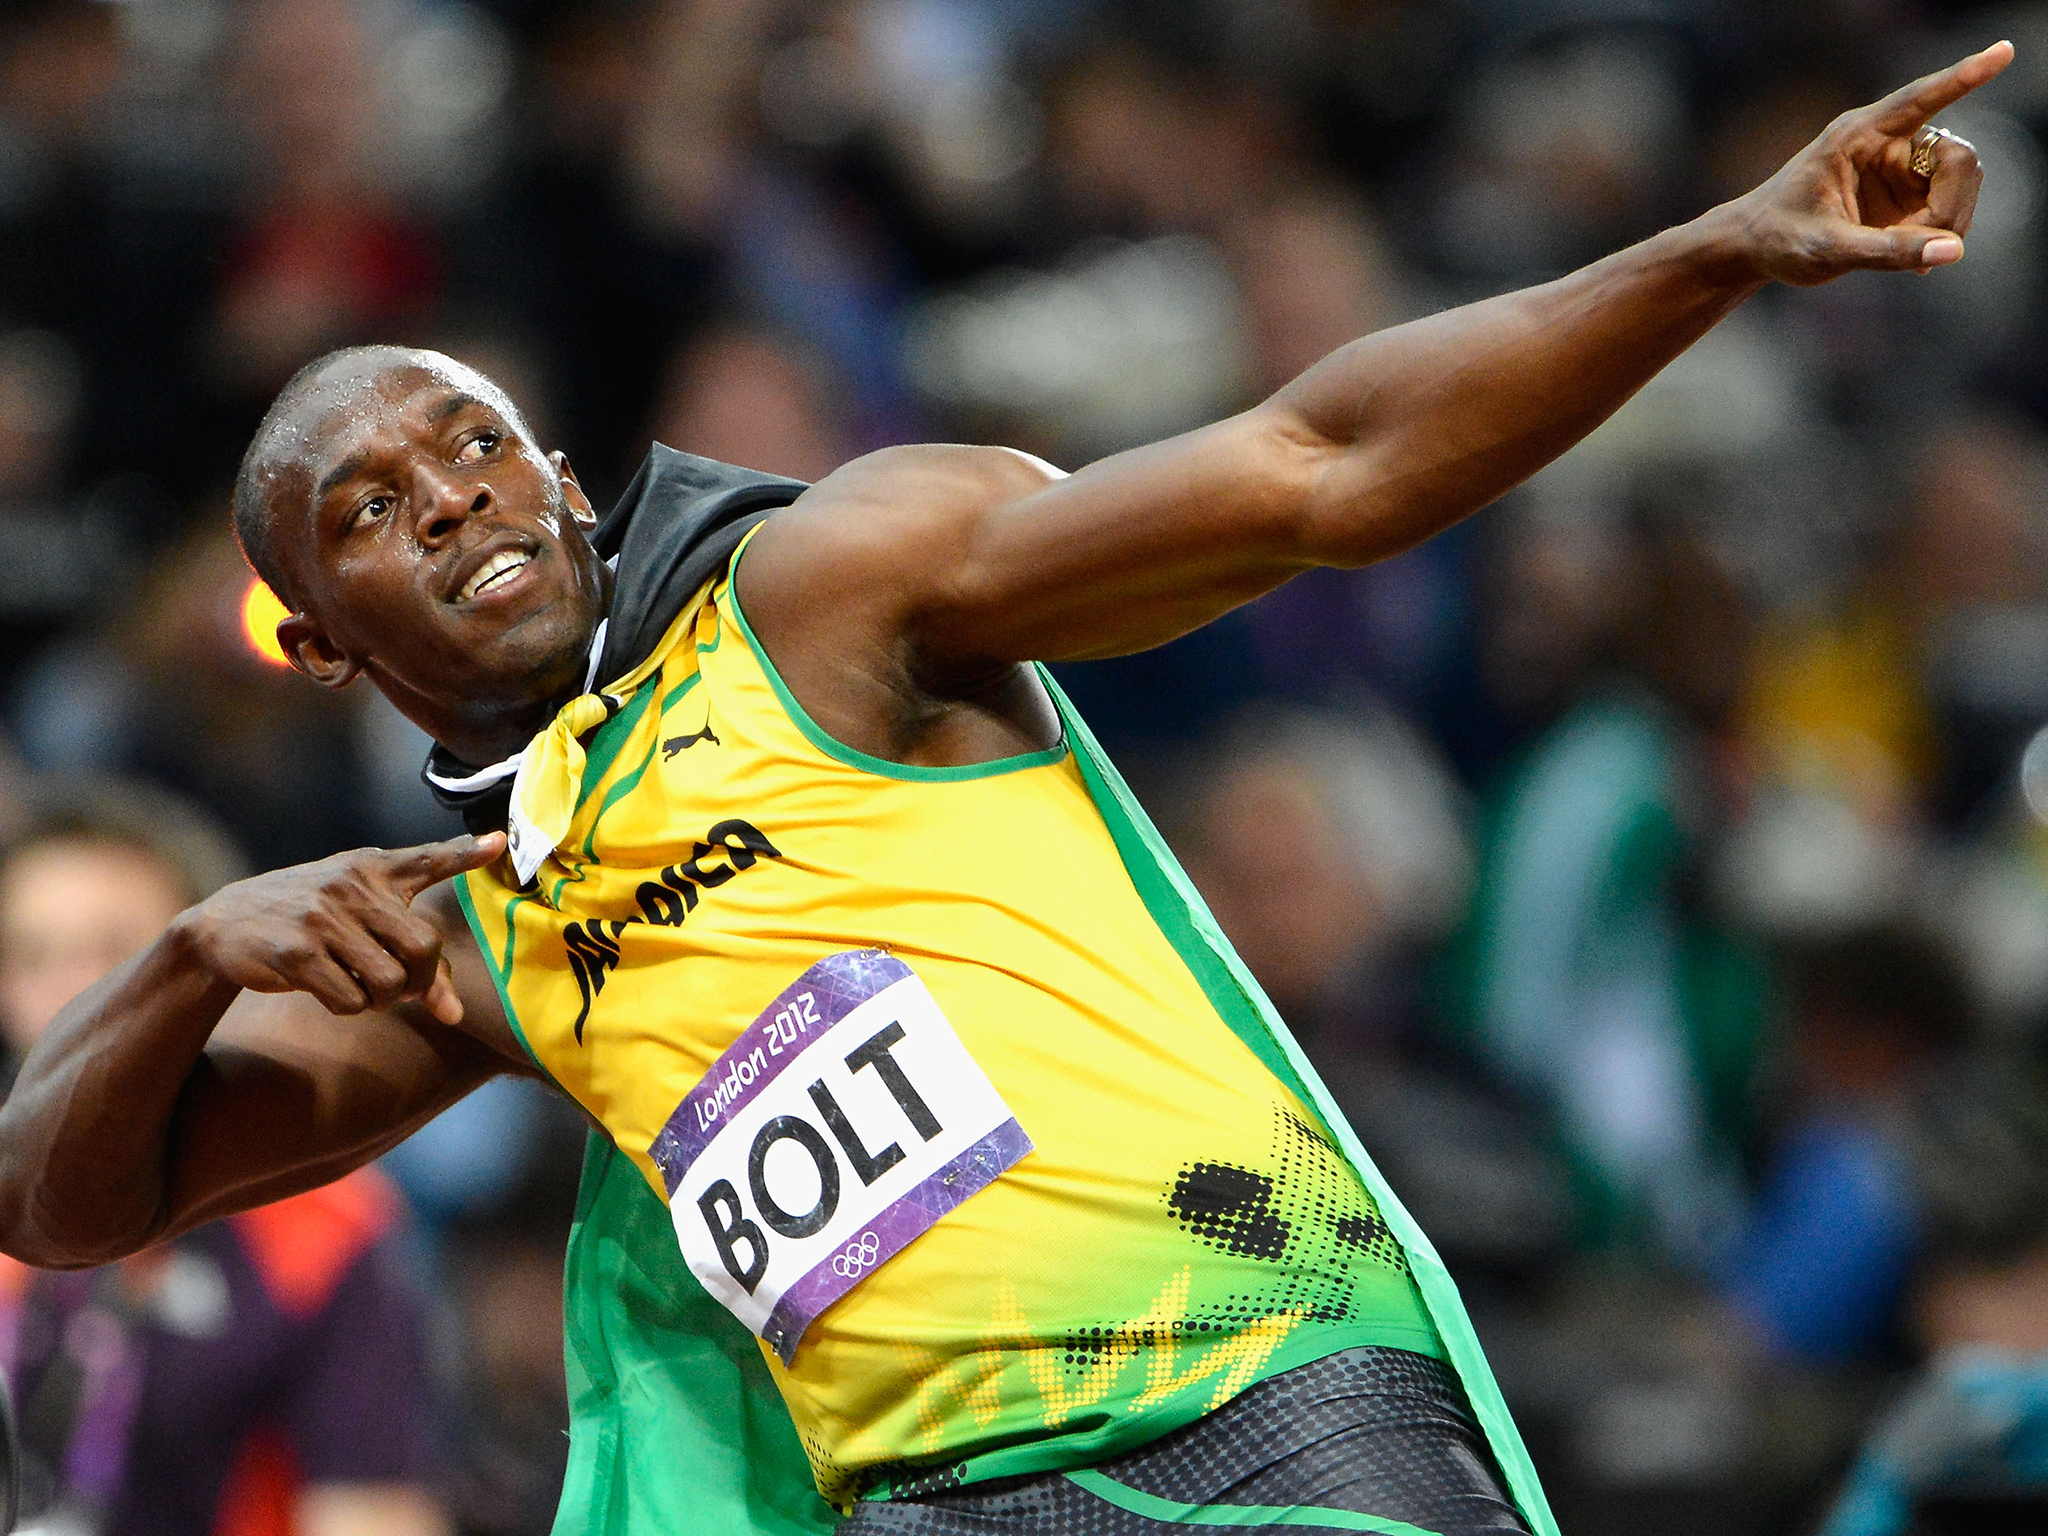 Usain Bolt, Bolt, Yohan Blake, Justin Gatlin., Unknown Things About Bolt, Usain Bolt Olympic Medals, Olympic Medals, Maximum Olympic Medals, 9 Gold Medals, Maximum Gold Medals